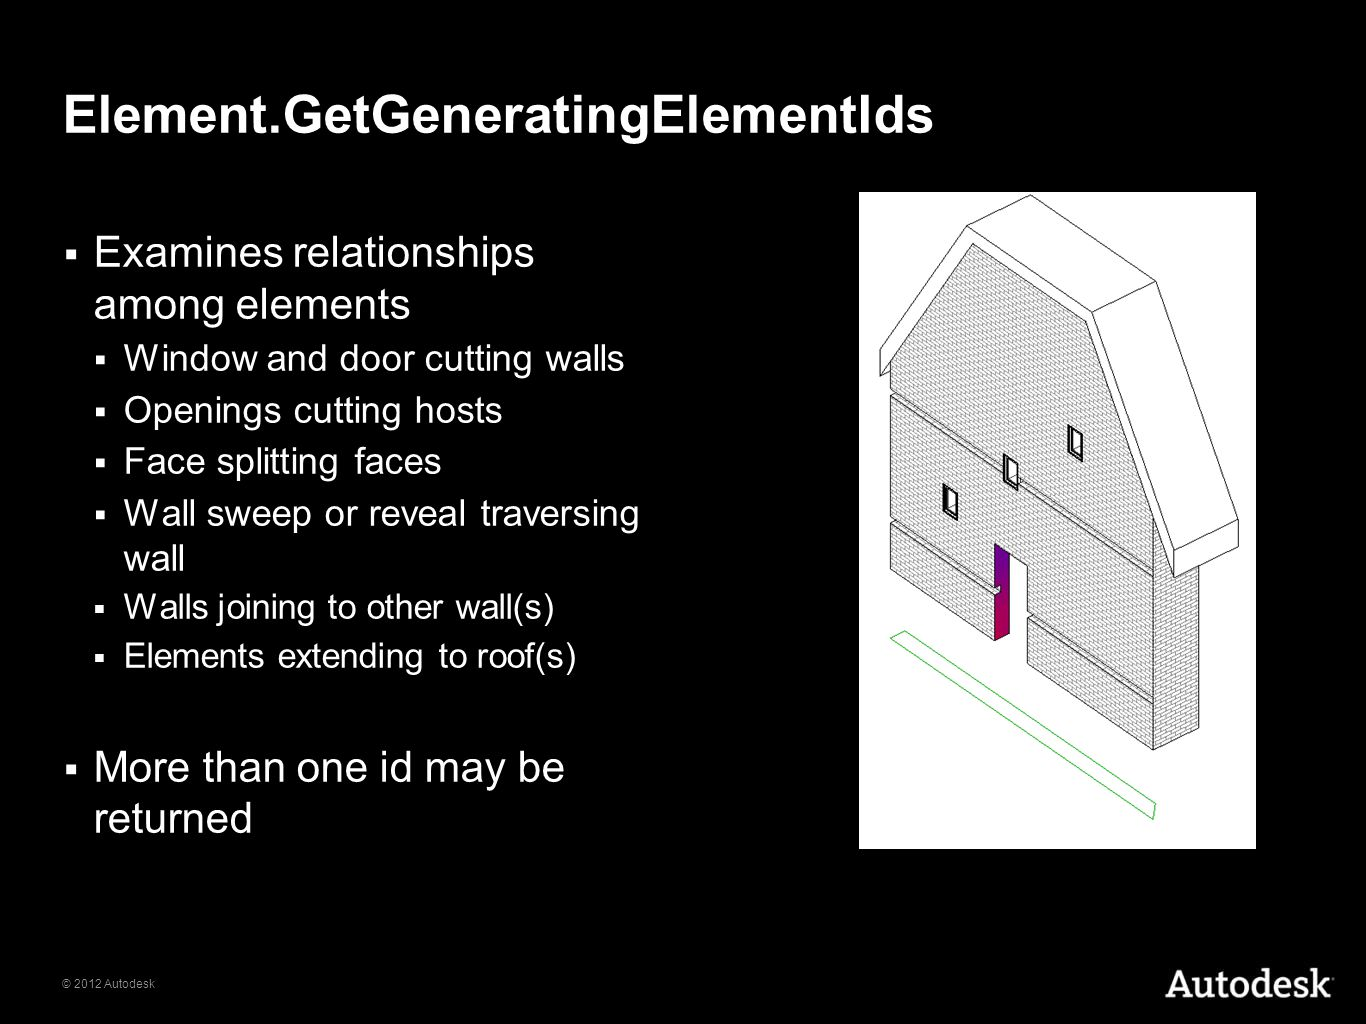 Element.GetGeneratingElementIds